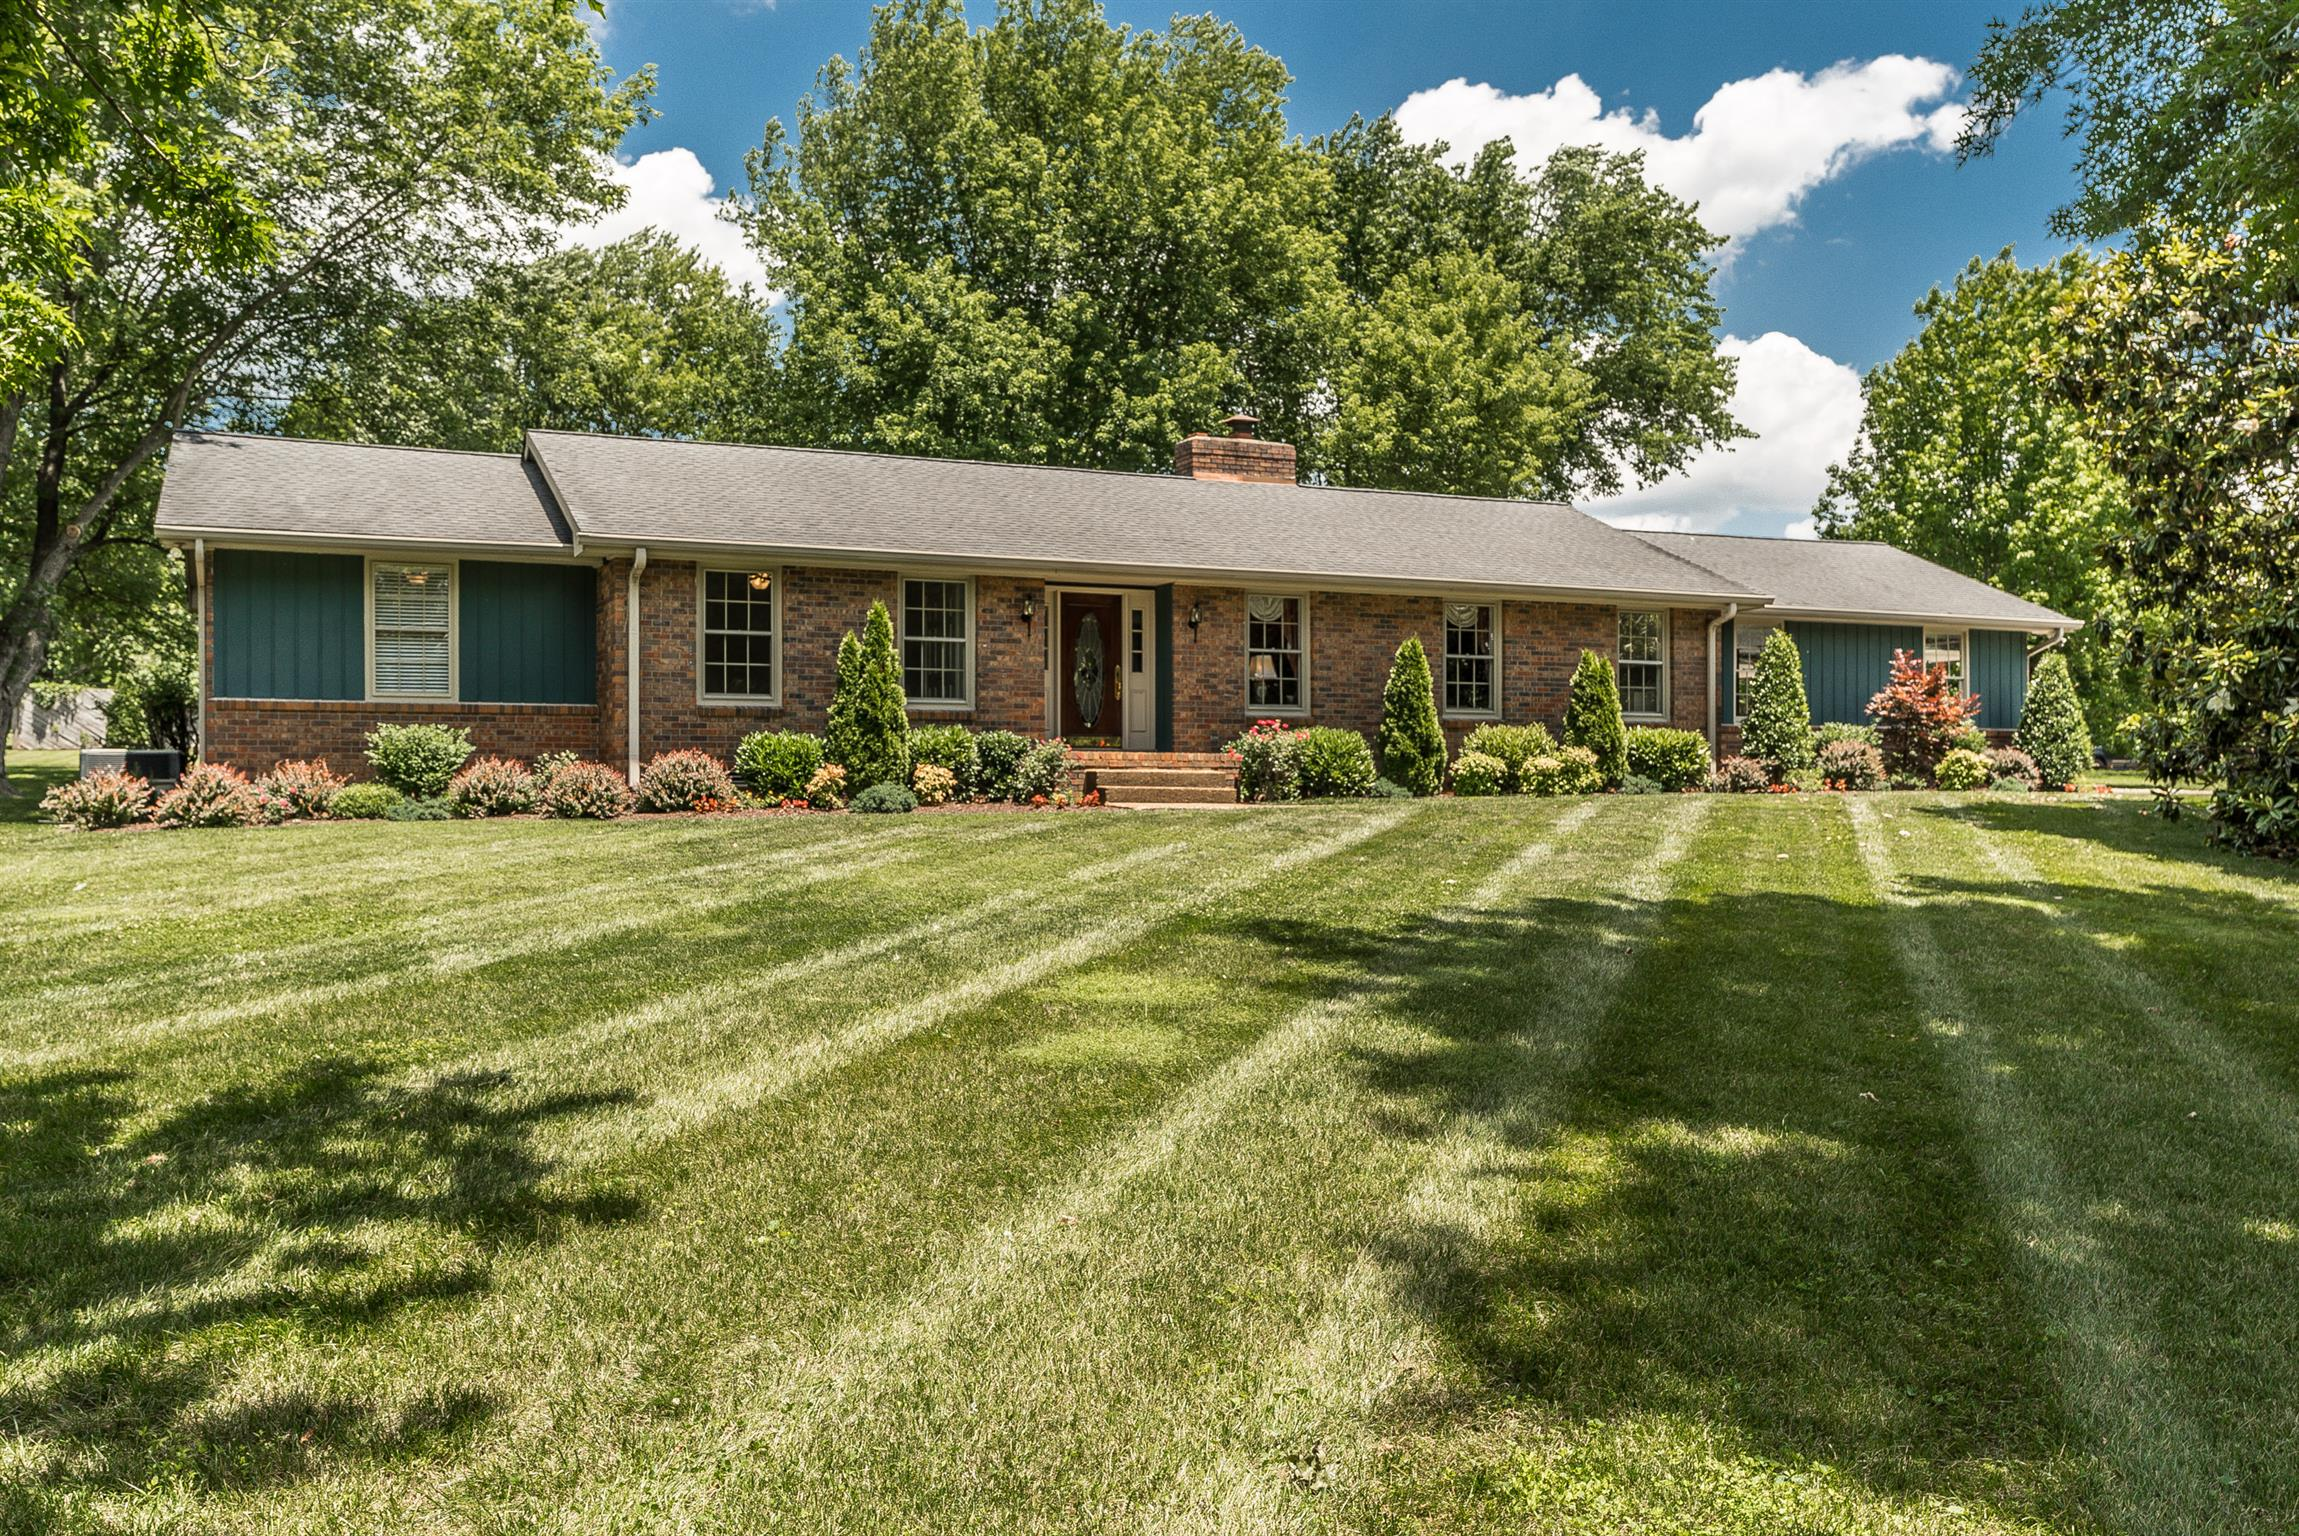 214 Spring Valley Rd, Hendersonville, Tennessee